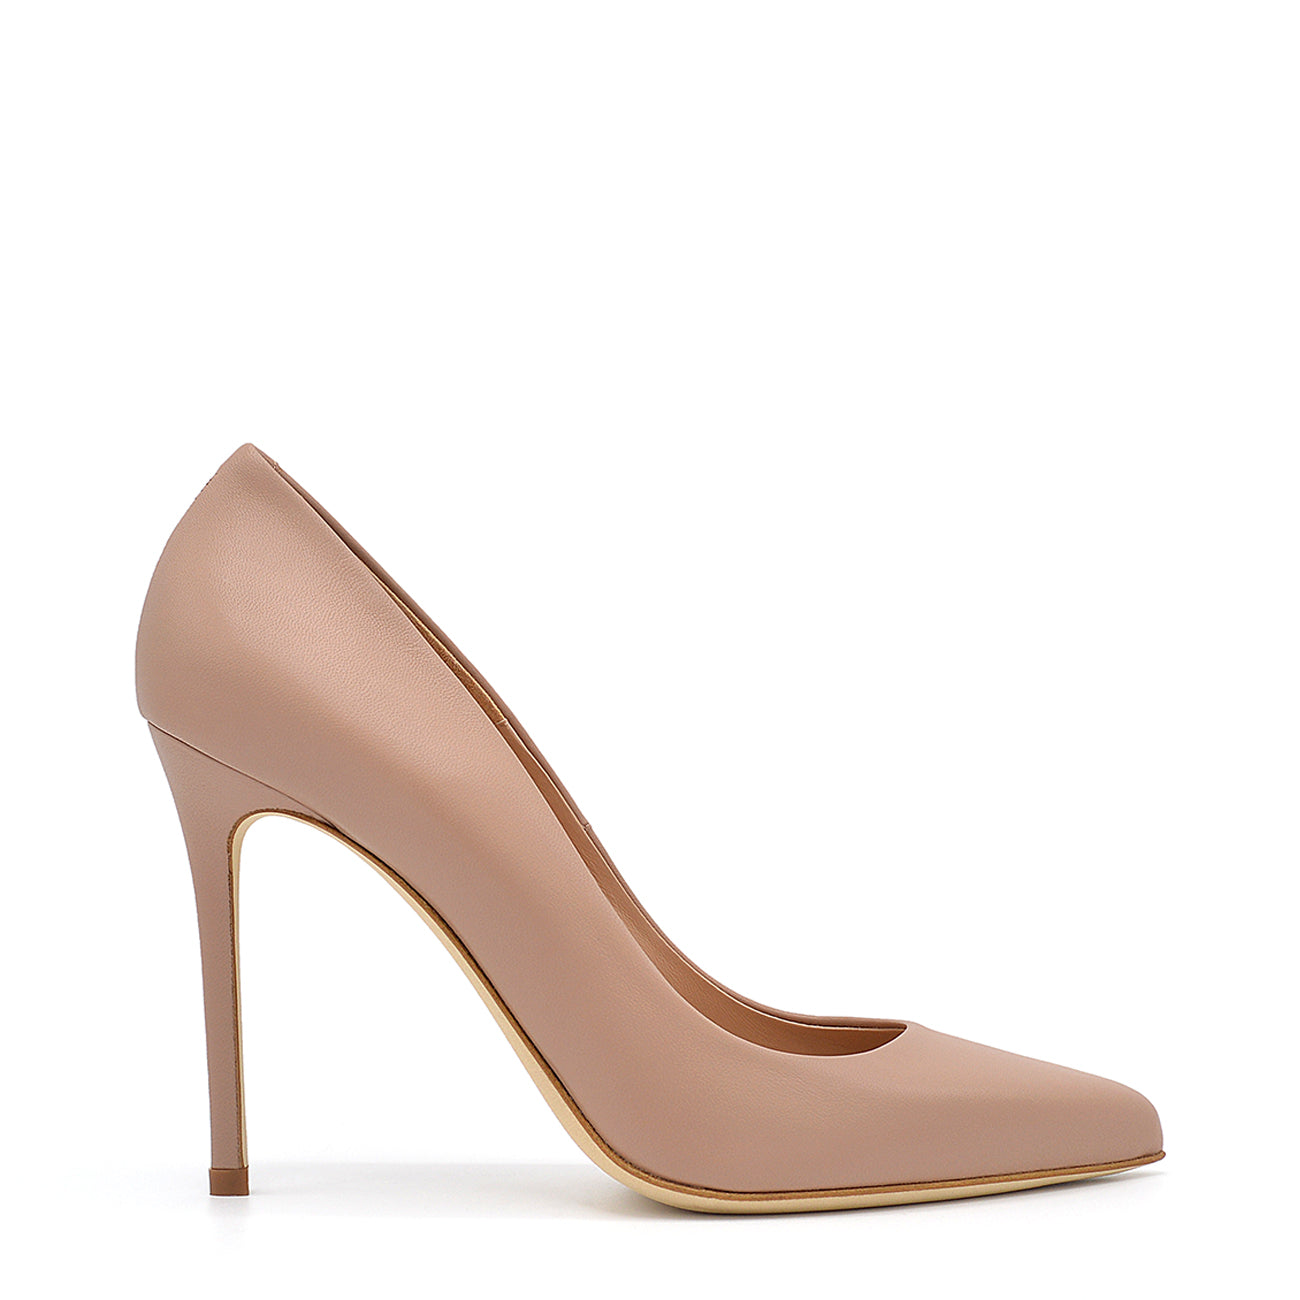 Myss. <br> Timeless natural nappa leather pumps